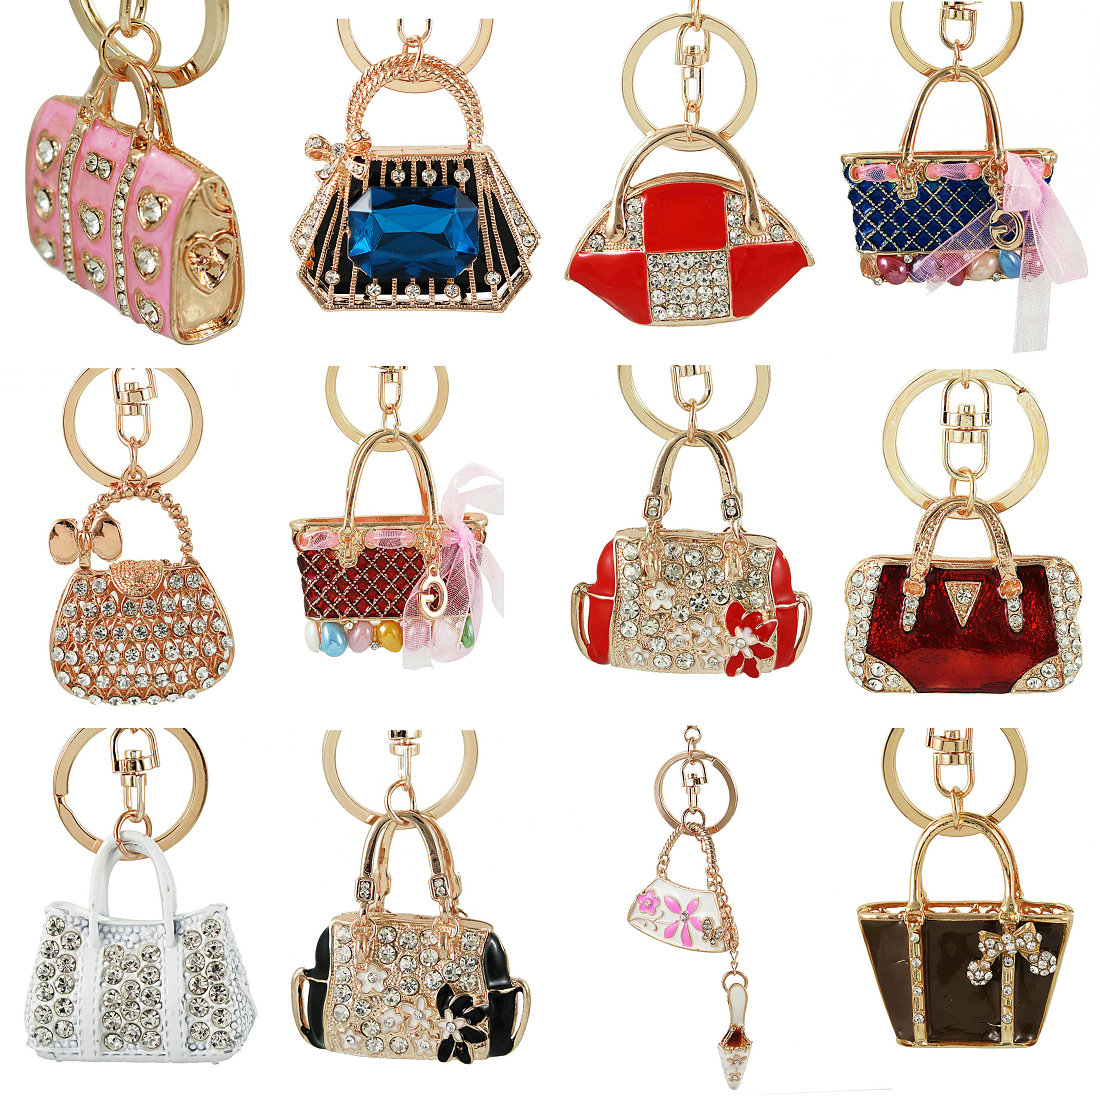 High Quality Handbag Keychains Crystal Pave Metal Fashion Women Bag Pendant Rhinestone Key Chains For Car Christmas Gift